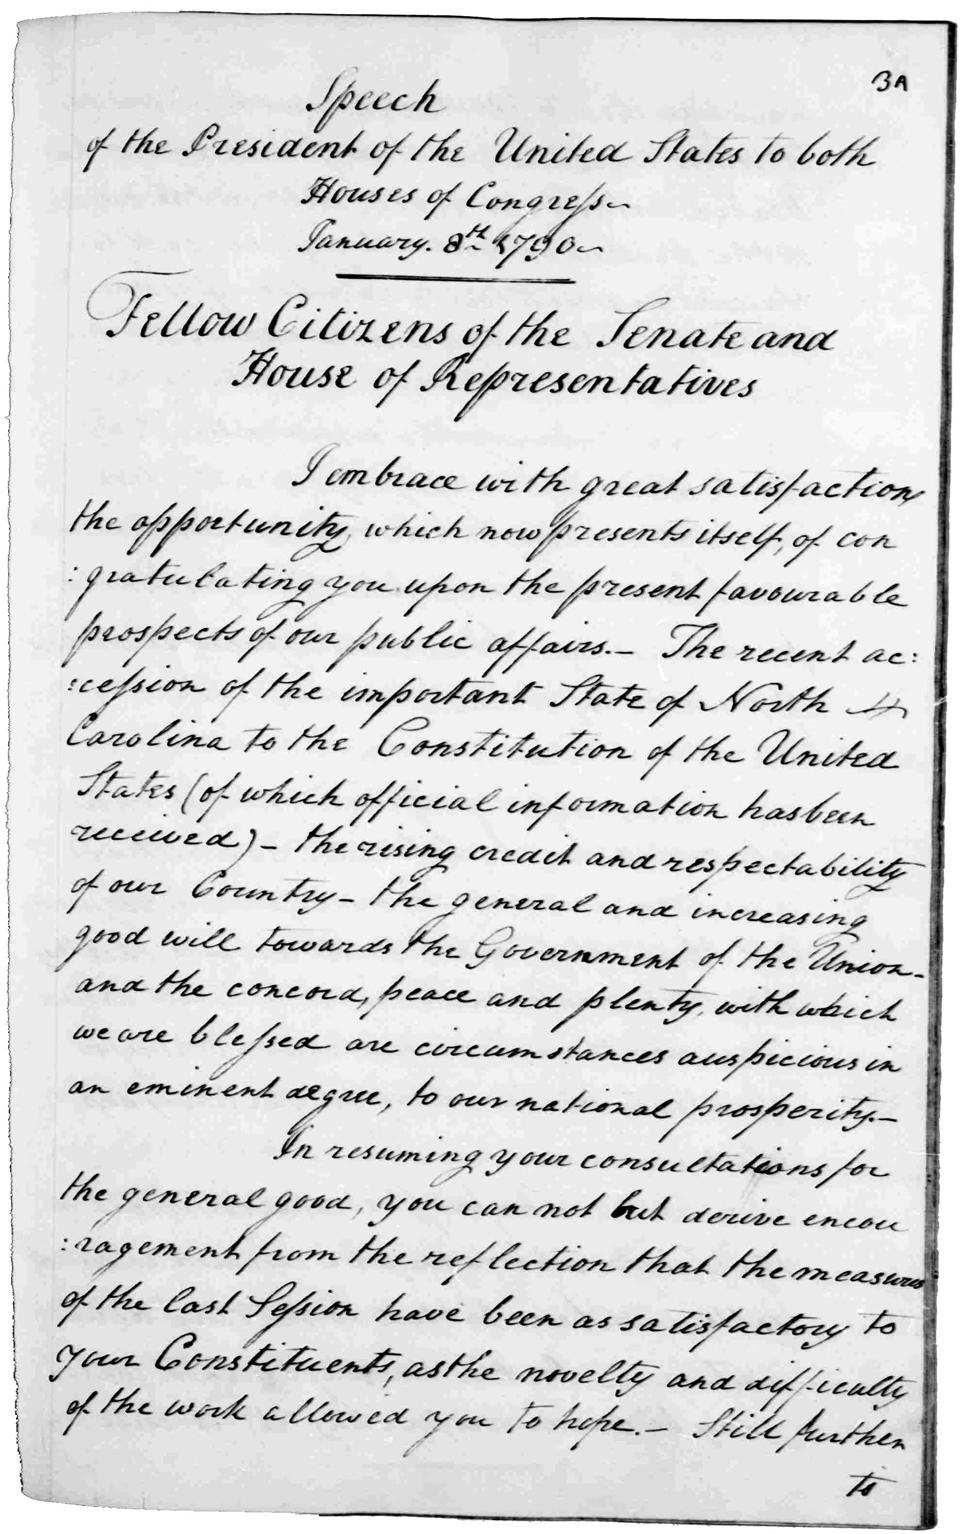 Washington's first State of the Union address